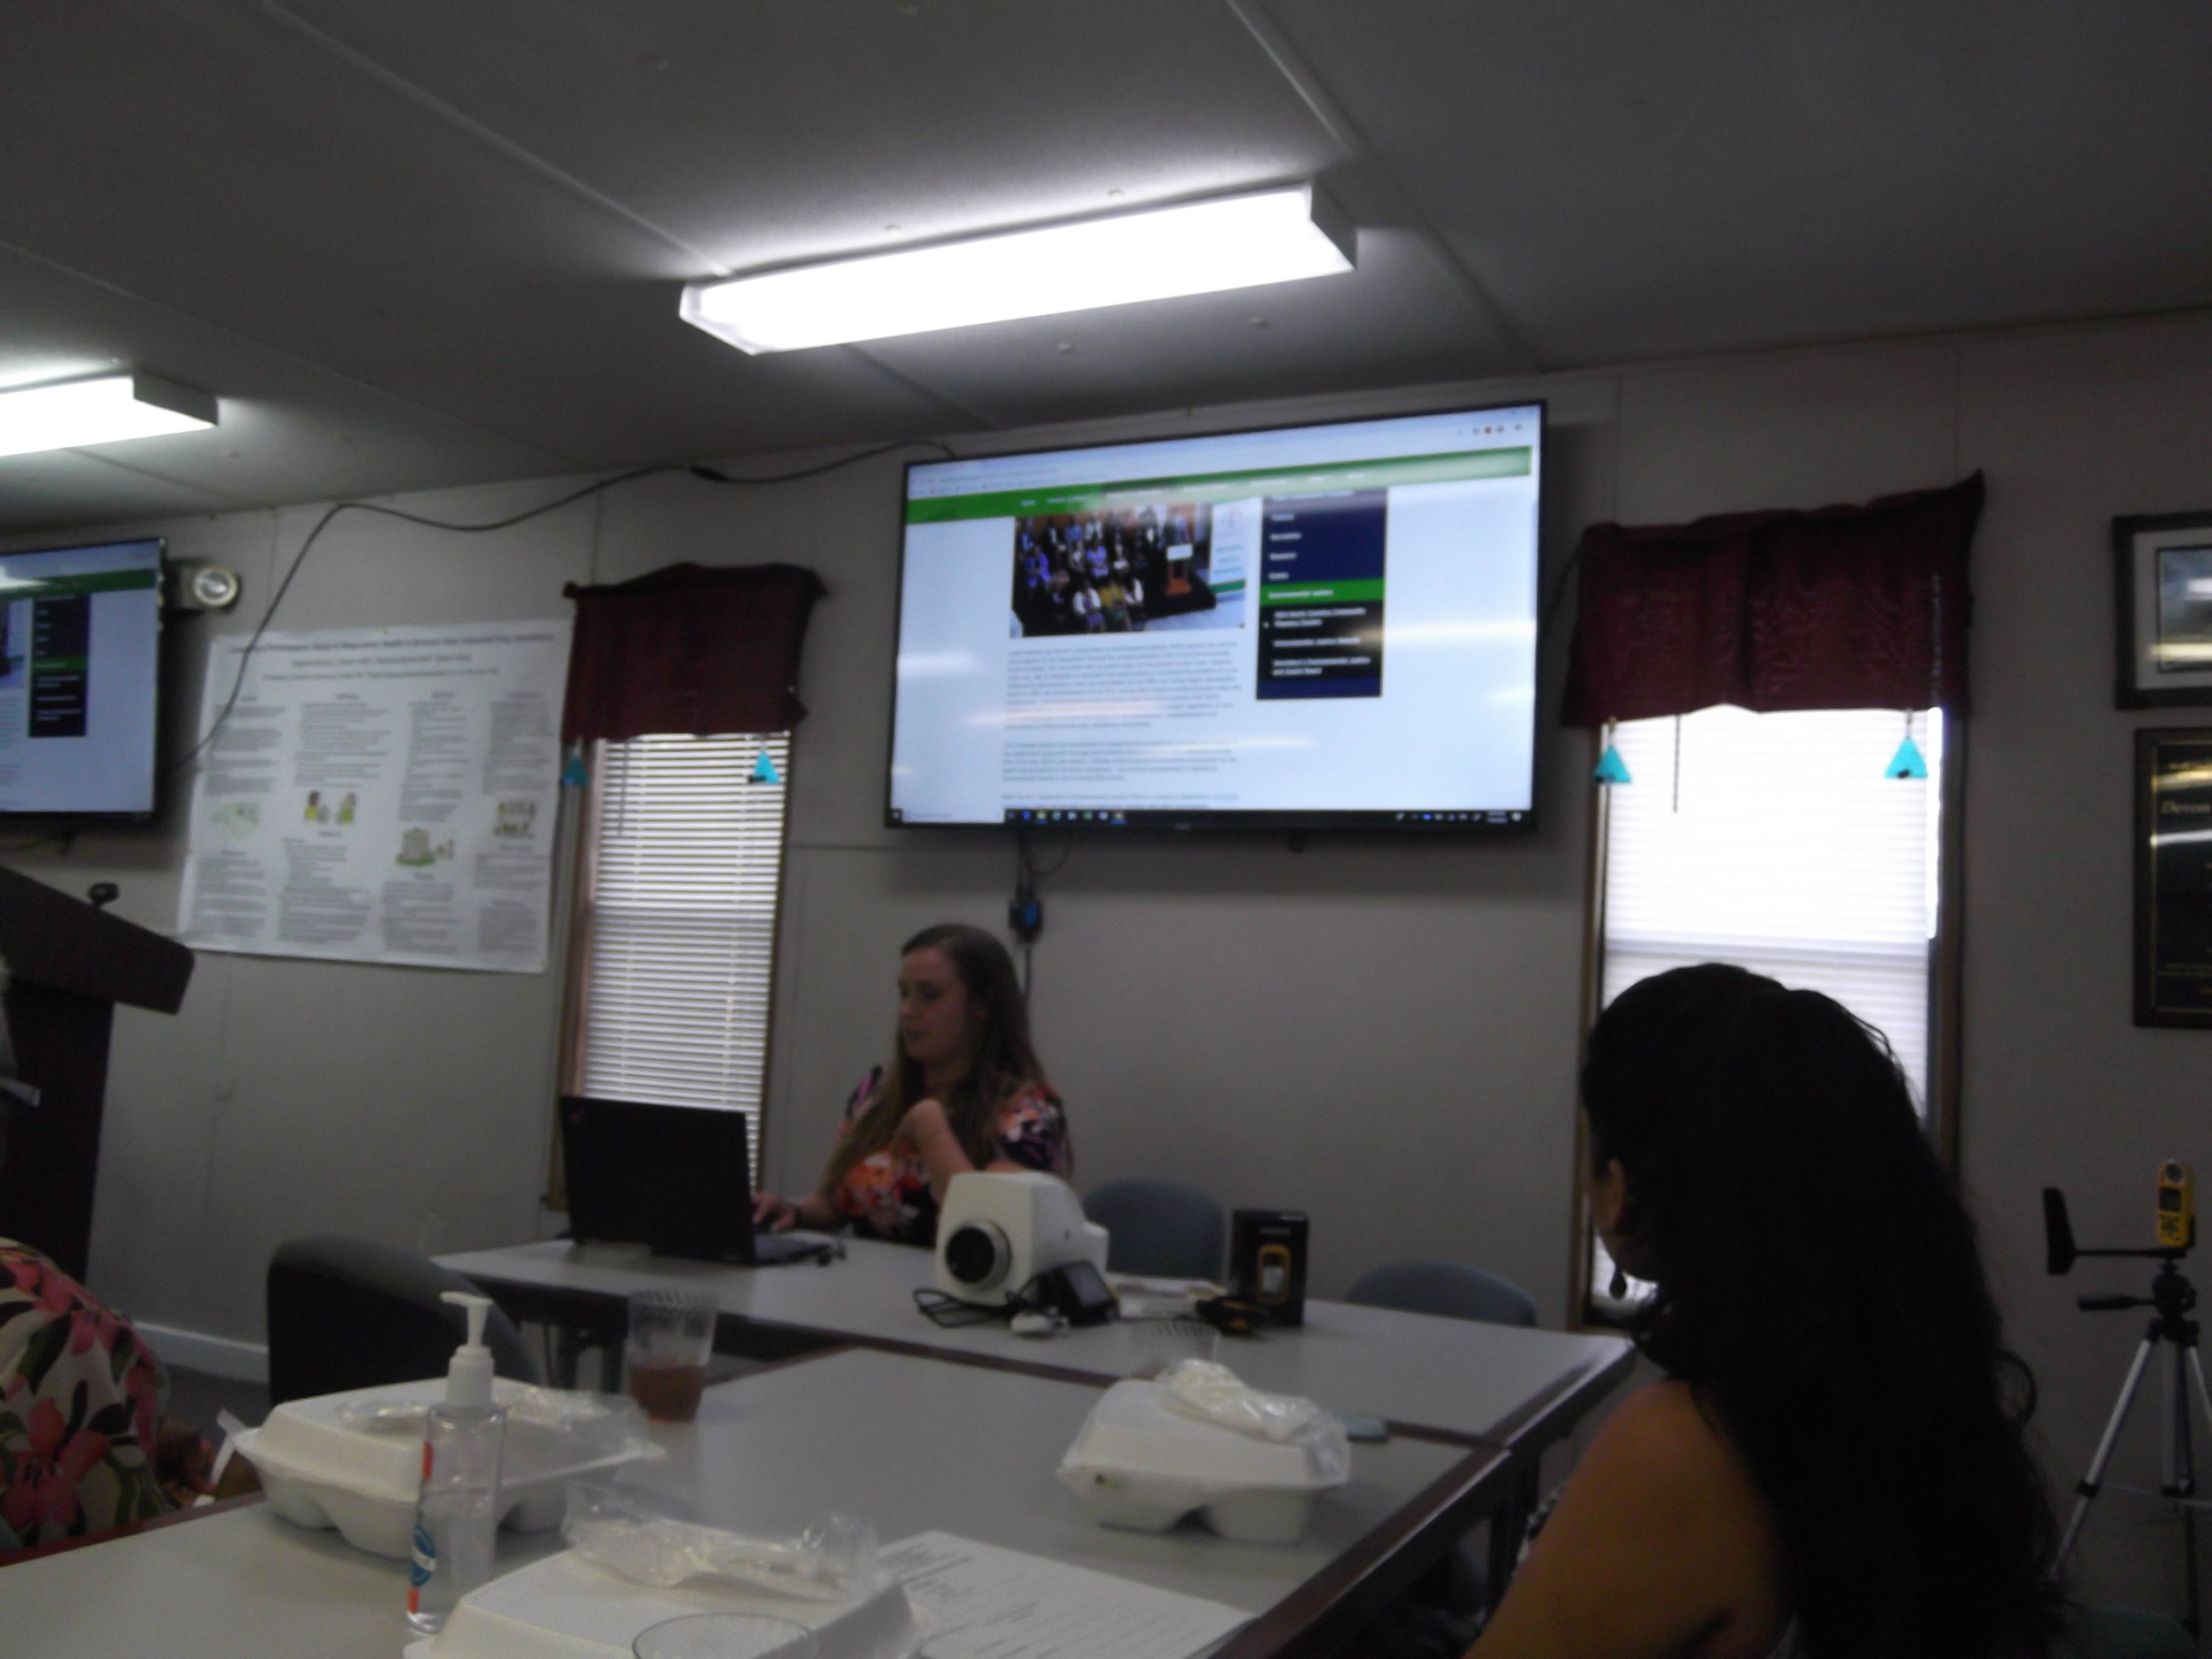 Renee Kramer for the NC Department of Environmental Quality (DEQ) educates REACH members about the DEQ North Carolina Community Mapping System. Learn more at  https://deq.nc.gov/outreach-education/environmental-justice/deq-north-carolina-community-mapping-system